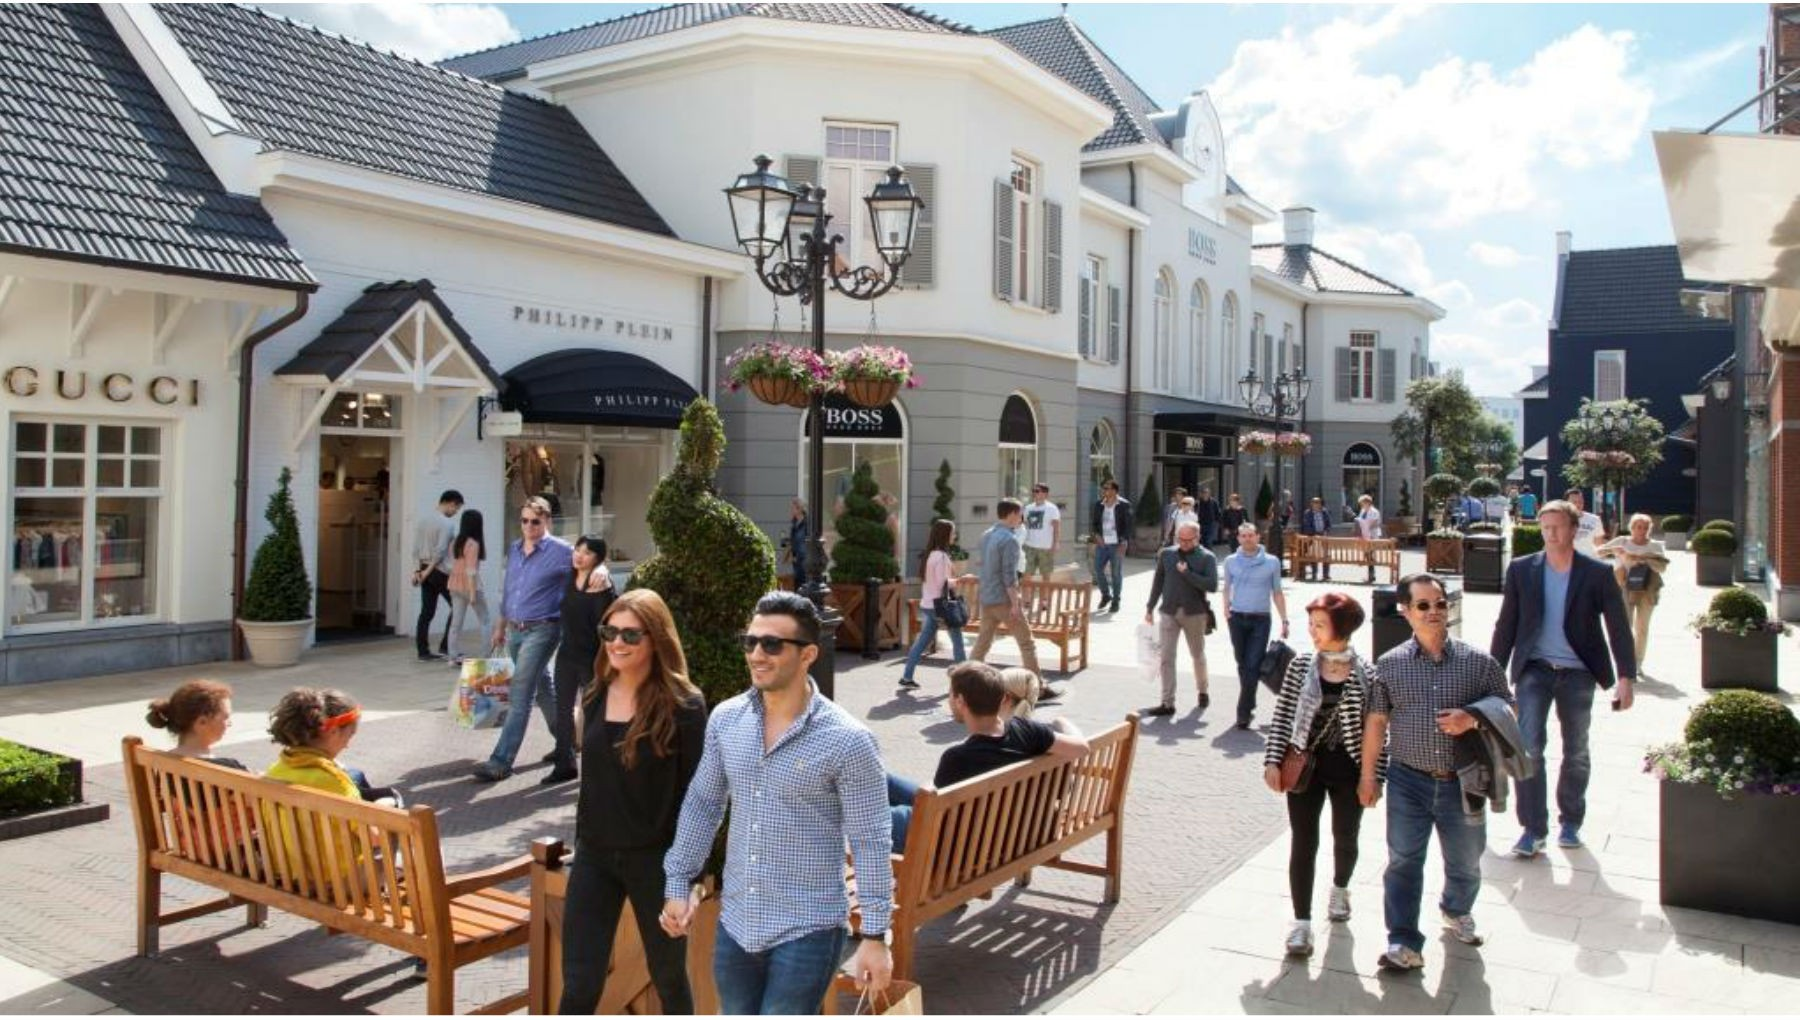 Designer Outlet Roermond Discount Mall in the Netherlands